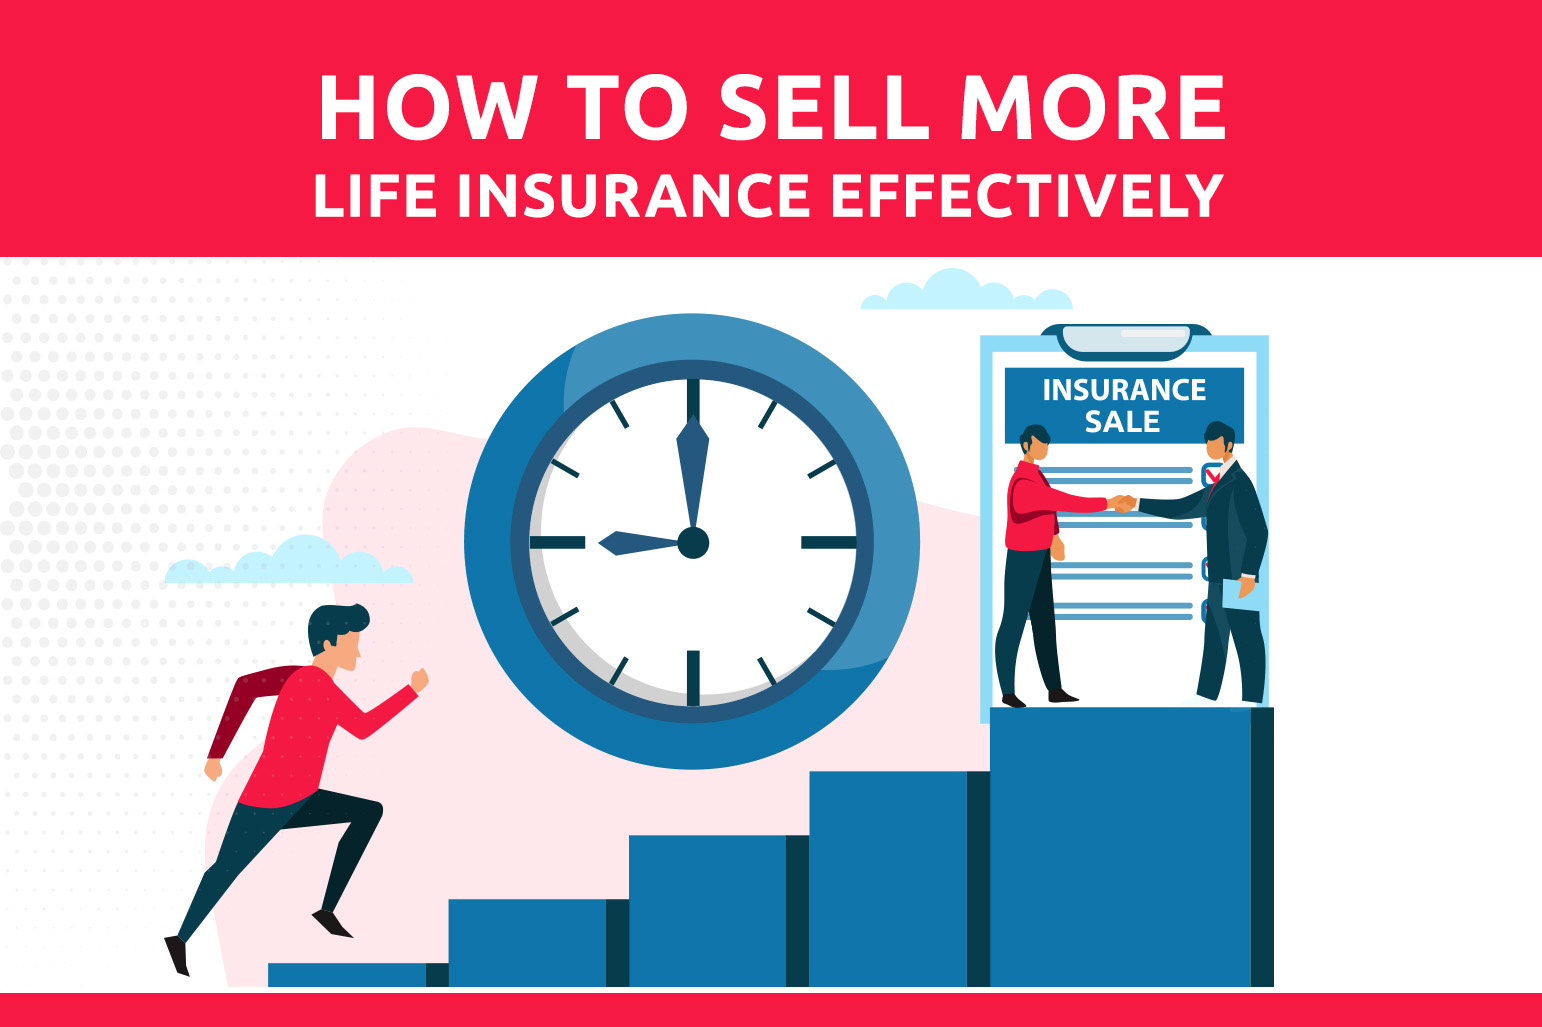 How To Sell More Life Insurance Effectively